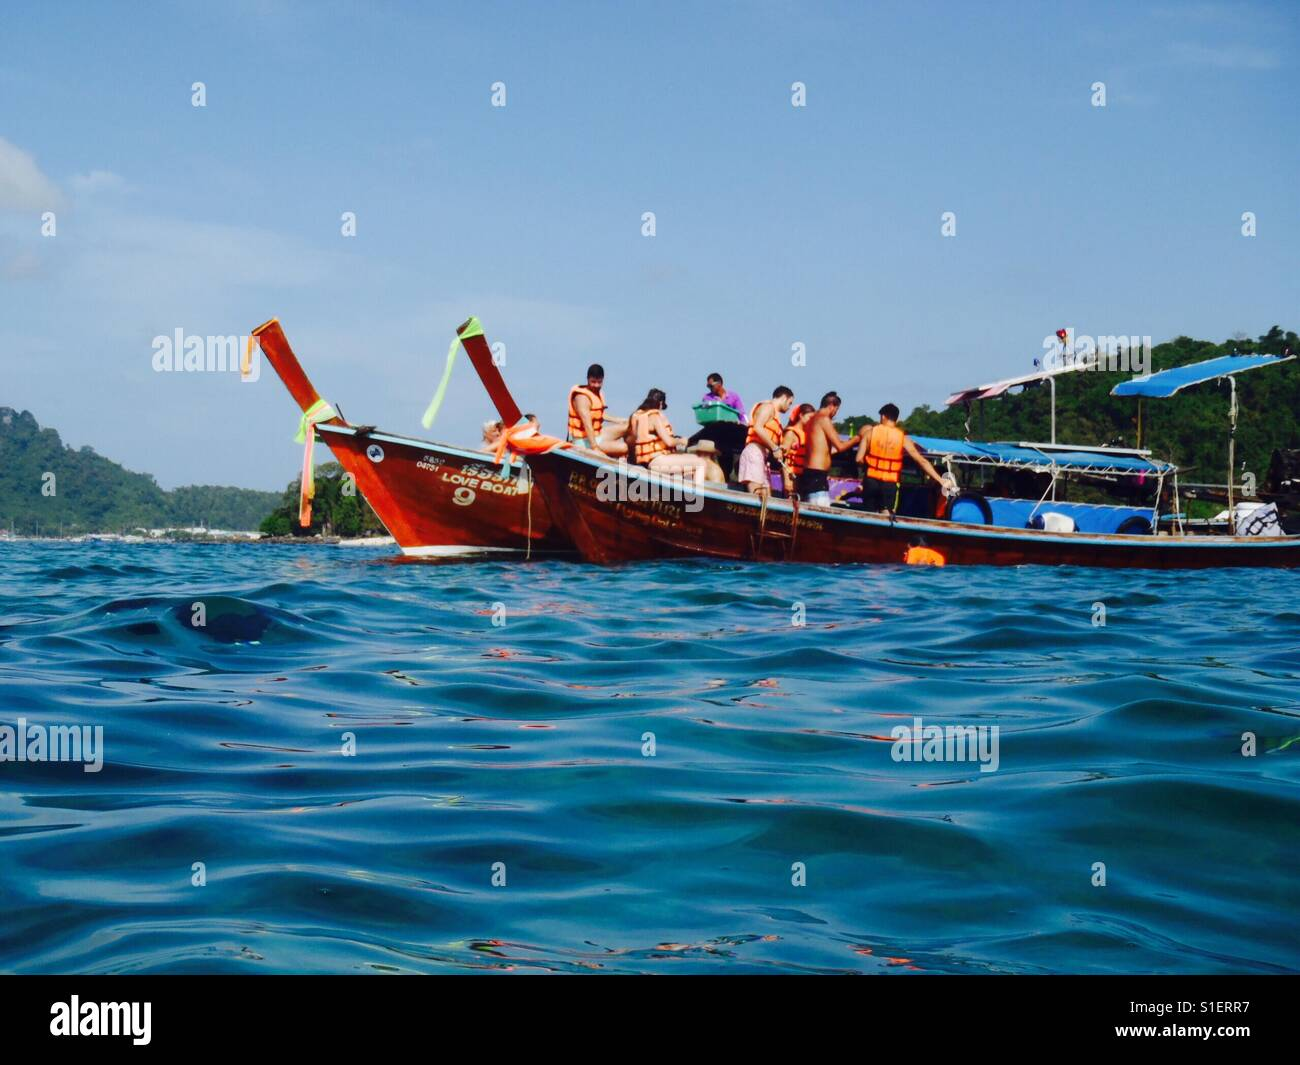 Boat of people - Thailand, Edited - Stock Image